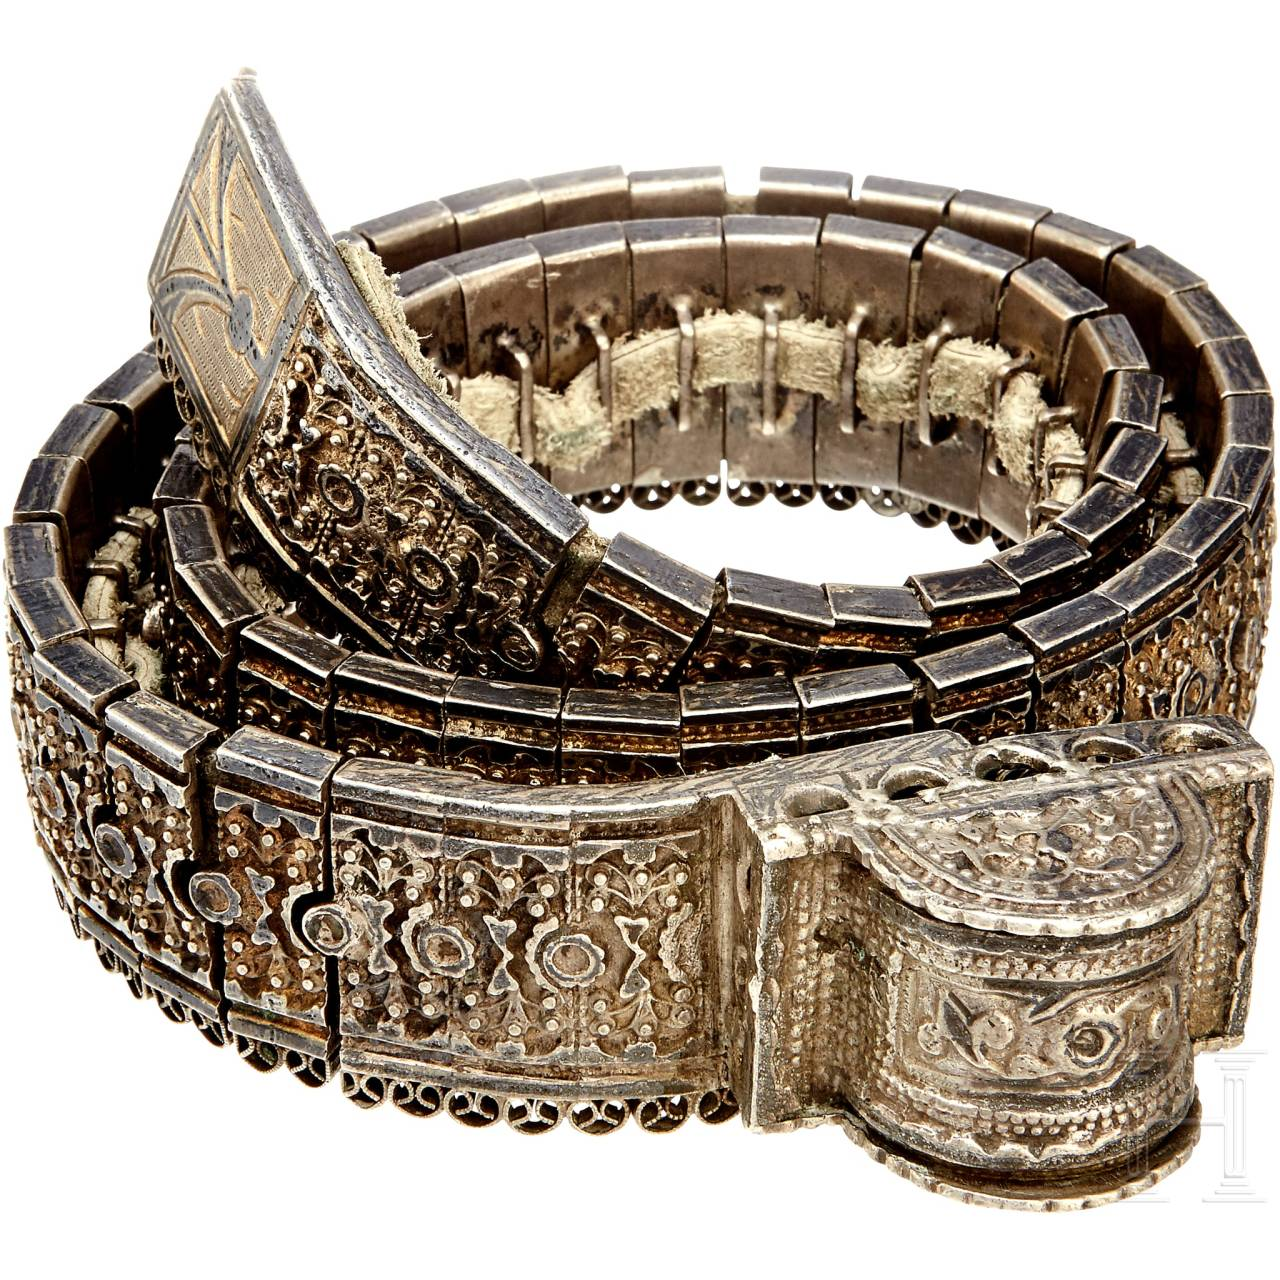 A silver Caucasian jewelry belt, 2nd half of the 19th century